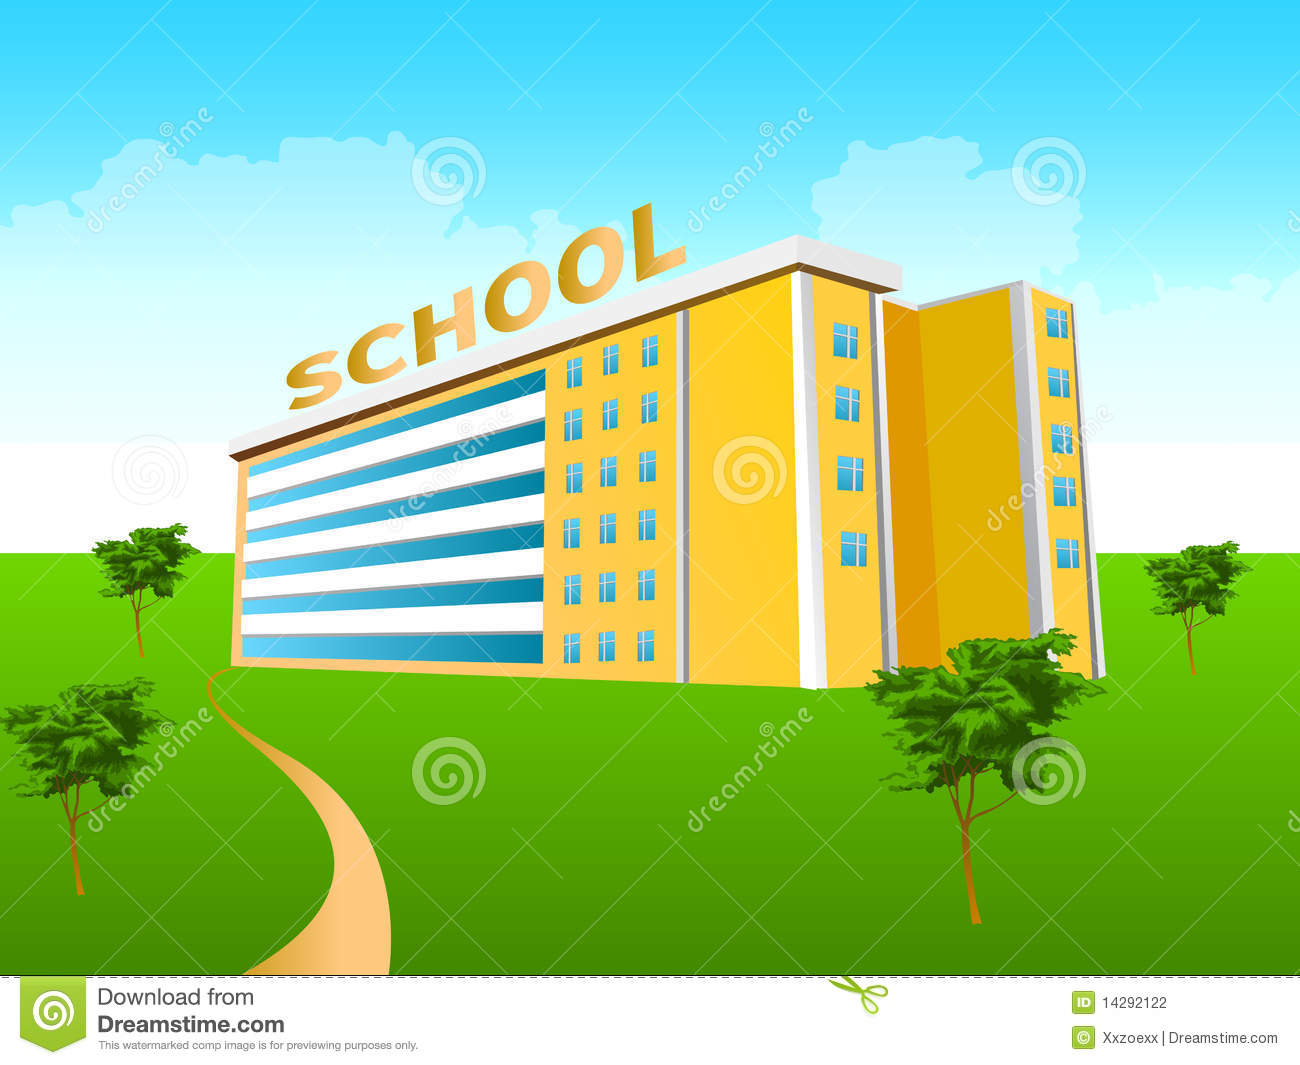 School Building In The Green Stock Photography - Image: 14292122